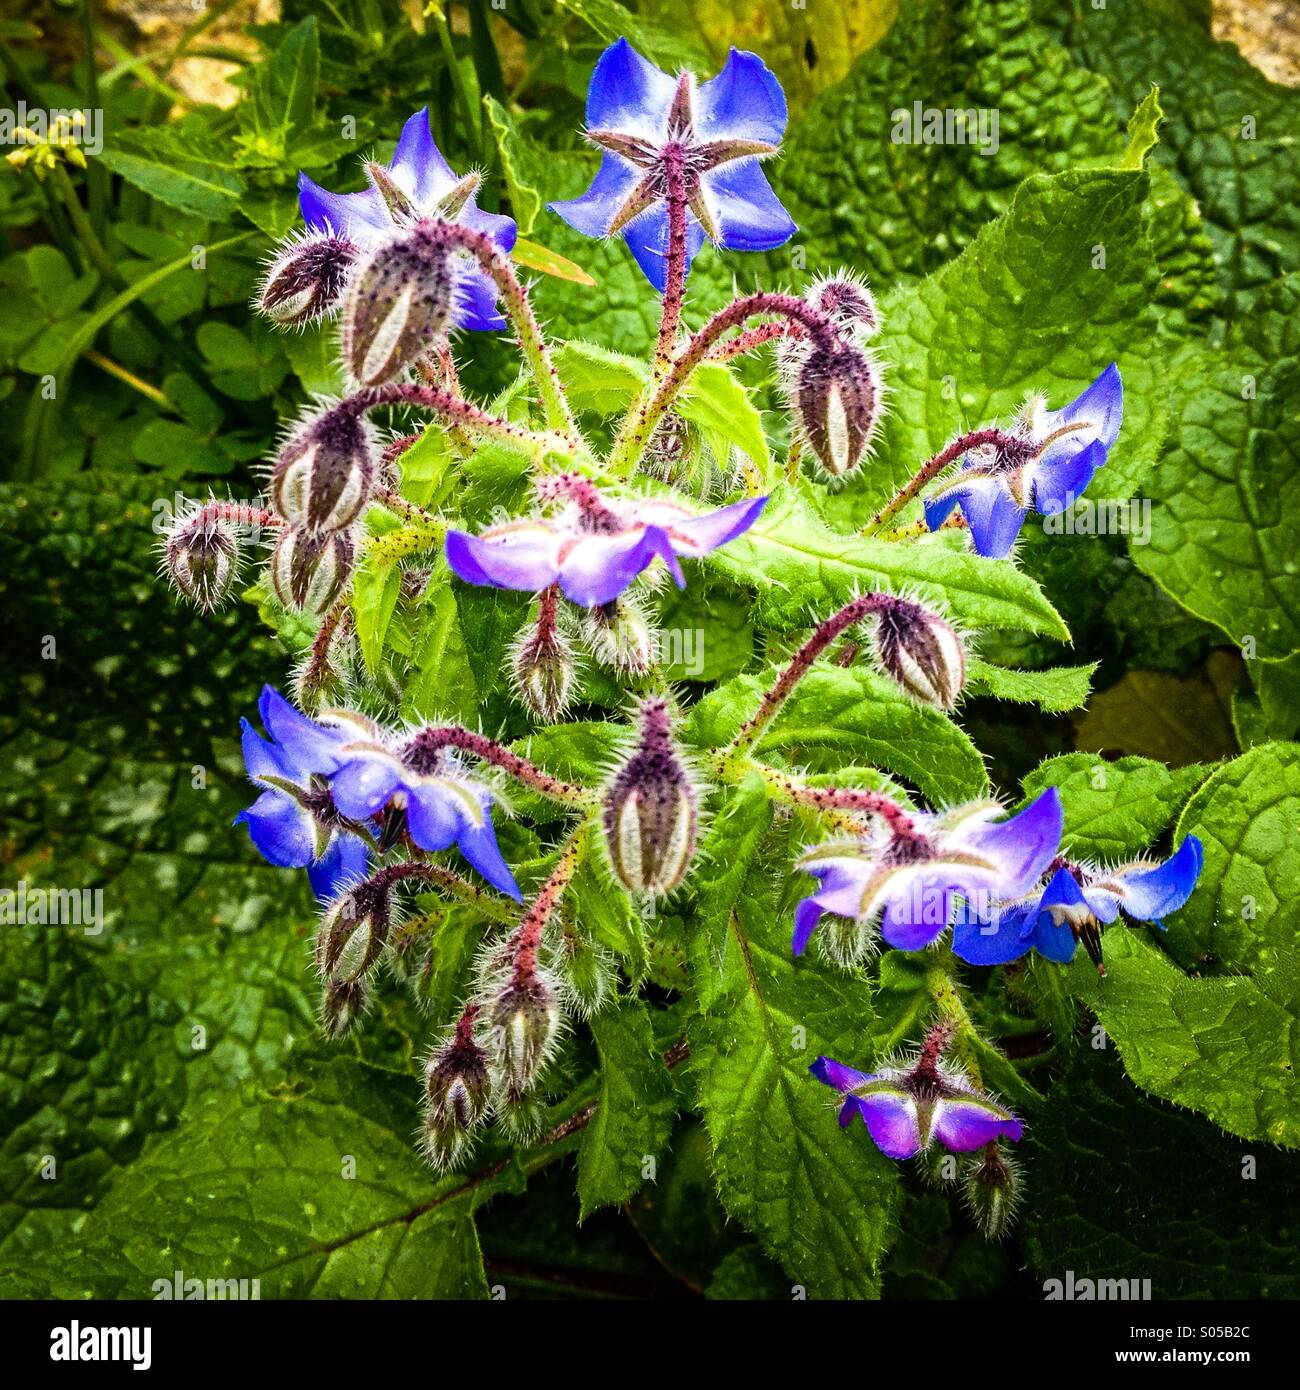 Flowering Borage used as a salad herb - Stock Image